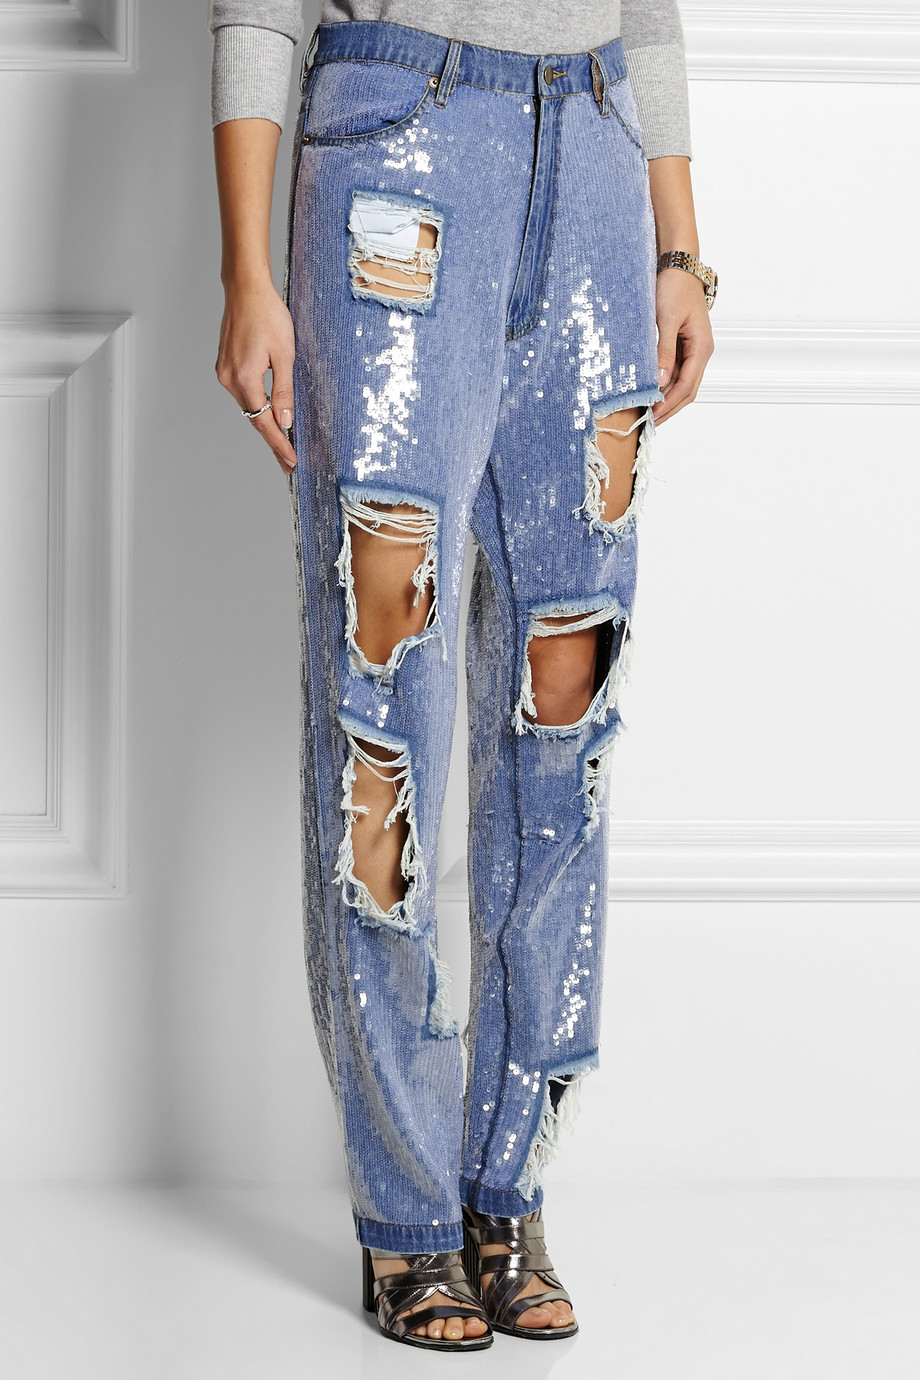 Ashish Sequined Distressed High-Rise Boyfriend Jeans in Blue | Lyst